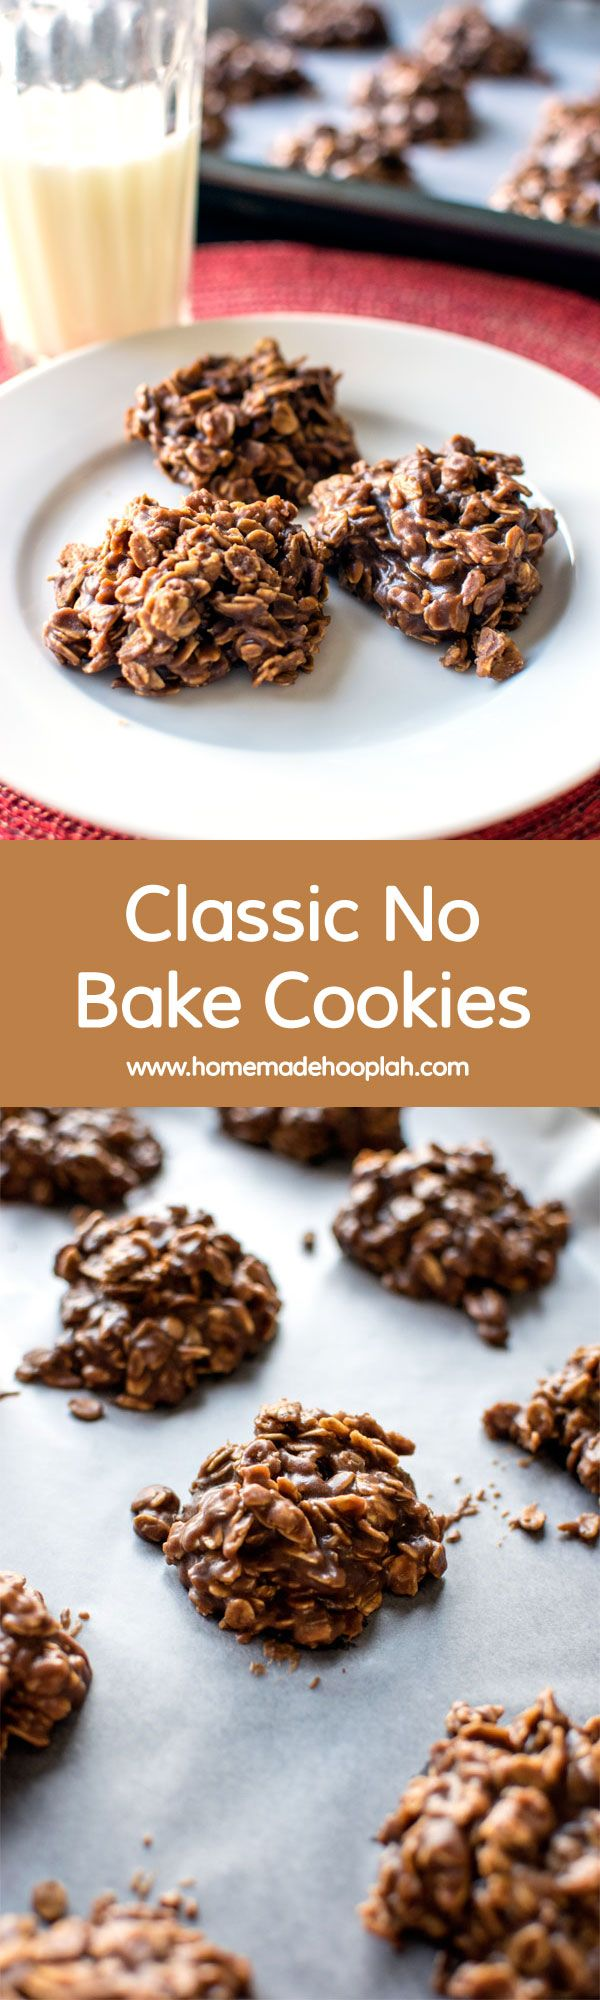 "Classic No Bake Cookies! A cookie classic - tried and true ""no bake"" cookies! 